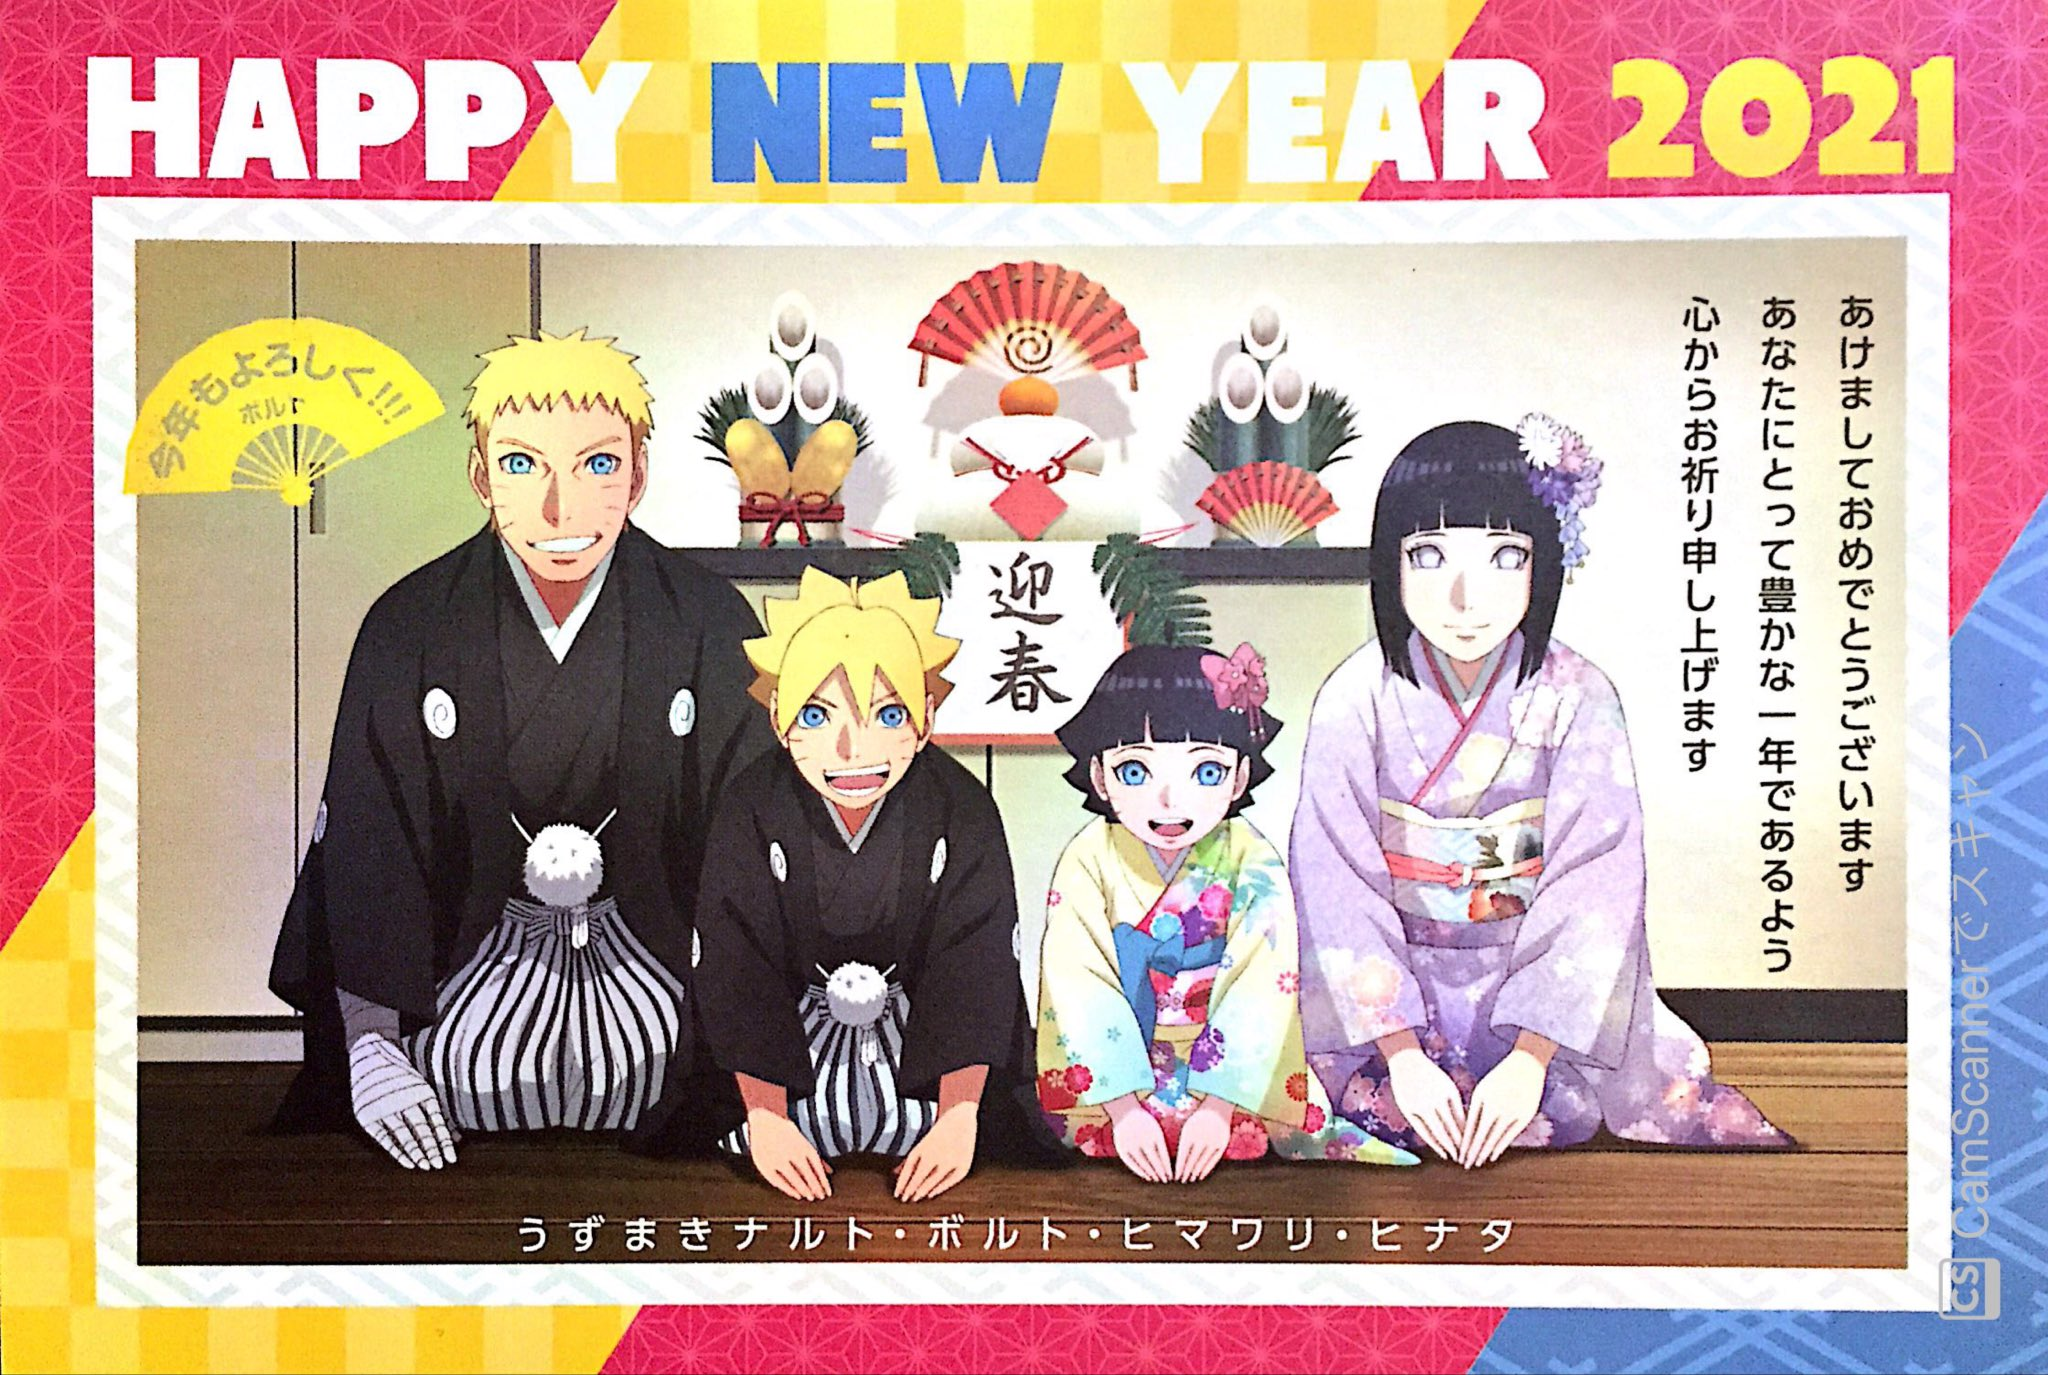 uzumaki family new year 2021